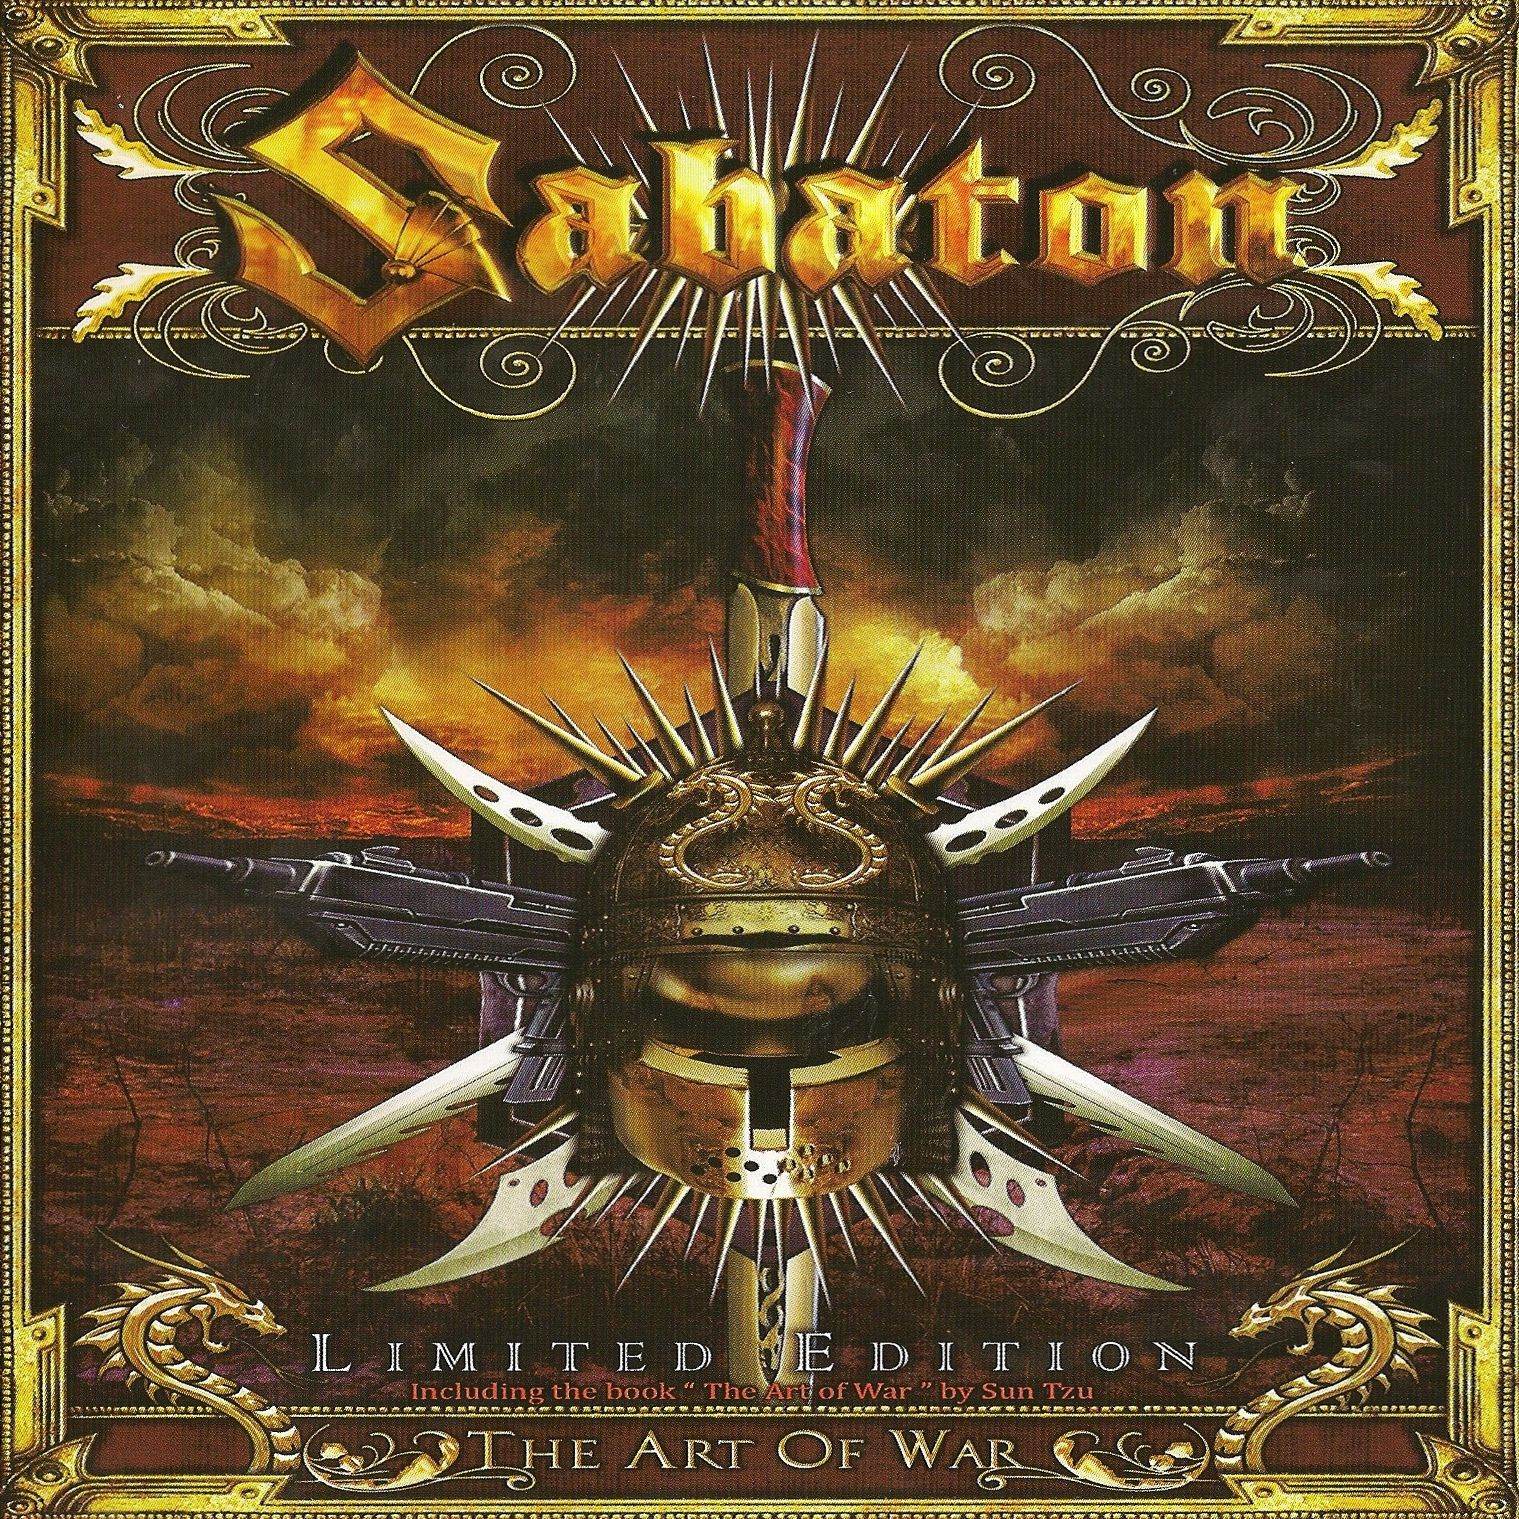 Sabaton - Art Of War album cover